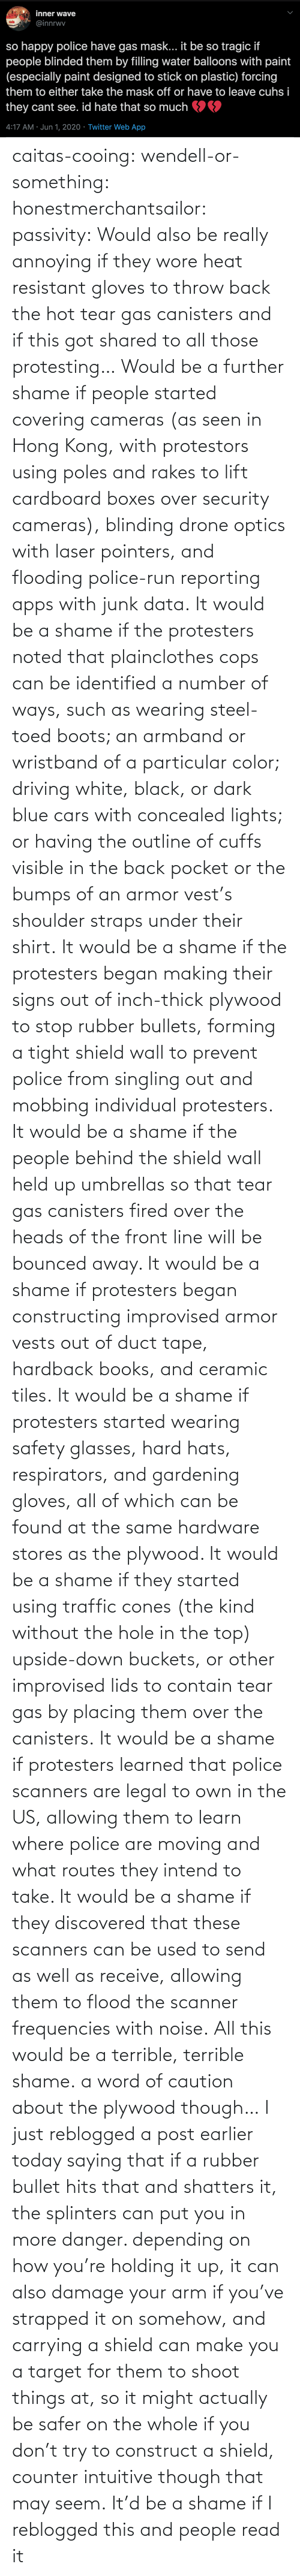 Blue: caitas-cooing:  wendell-or-something: honestmerchantsailor:  passivity: Would also be really annoying if they wore heat resistant gloves to throw back the hot tear gas canisters and if this got shared to all those protesting… Would be a further shame if people started covering cameras (as seen in Hong Kong, with protestors using poles and rakes to lift cardboard boxes over security cameras), blinding drone optics with laser pointers, and flooding police-run reporting apps with junk data. It would be a shame if the protesters noted that plainclothes cops can be identified a number of ways, such as wearing steel-toed boots; an armband or wristband of a particular color; driving white, black, or dark blue cars with concealed lights; or having the outline of cuffs visible in the back pocket or the bumps of an armor vest's shoulder straps under their shirt. It would be a shame if the protesters began making their signs out of inch-thick plywood to stop rubber bullets, forming a tight shield wall to prevent police from singling out and mobbing individual protesters. It would be a shame if the people behind the shield wall held up umbrellas so that tear gas canisters fired over the heads of the front line will be bounced away. It would be a shame if protesters began constructing improvised armor vests out of duct tape, hardback books, and ceramic tiles. It would be a shame if protesters started wearing safety glasses, hard hats, respirators, and gardening gloves, all of which can be found at the same hardware stores as the plywood. It would be a shame if they started using traffic cones (the kind without the hole in the top) upside-down buckets, or other improvised lids to contain tear gas by placing them over the canisters. It would be a shame if protesters learned that police scanners are legal to own in the US, allowing them to learn where police are moving and what routes they intend to take. It would be a shame if they discovered that these scanners can be used to send as well as receive, allowing them to flood the scanner frequencies with noise. All this would be a terrible, terrible shame.    a word of caution about the plywood though… I just reblogged a post earlier today saying that if a rubber bullet hits that and shatters it, the splinters can put you in more danger. depending on how you're holding it up, it can also damage your arm if you've strapped it on somehow, and carrying a shield can make you a target for them to shoot things at, so it might actually be safer on the whole if you don't try to construct a shield, counter intuitive though that may seem.    It'd be a shame if I reblogged this and people read it